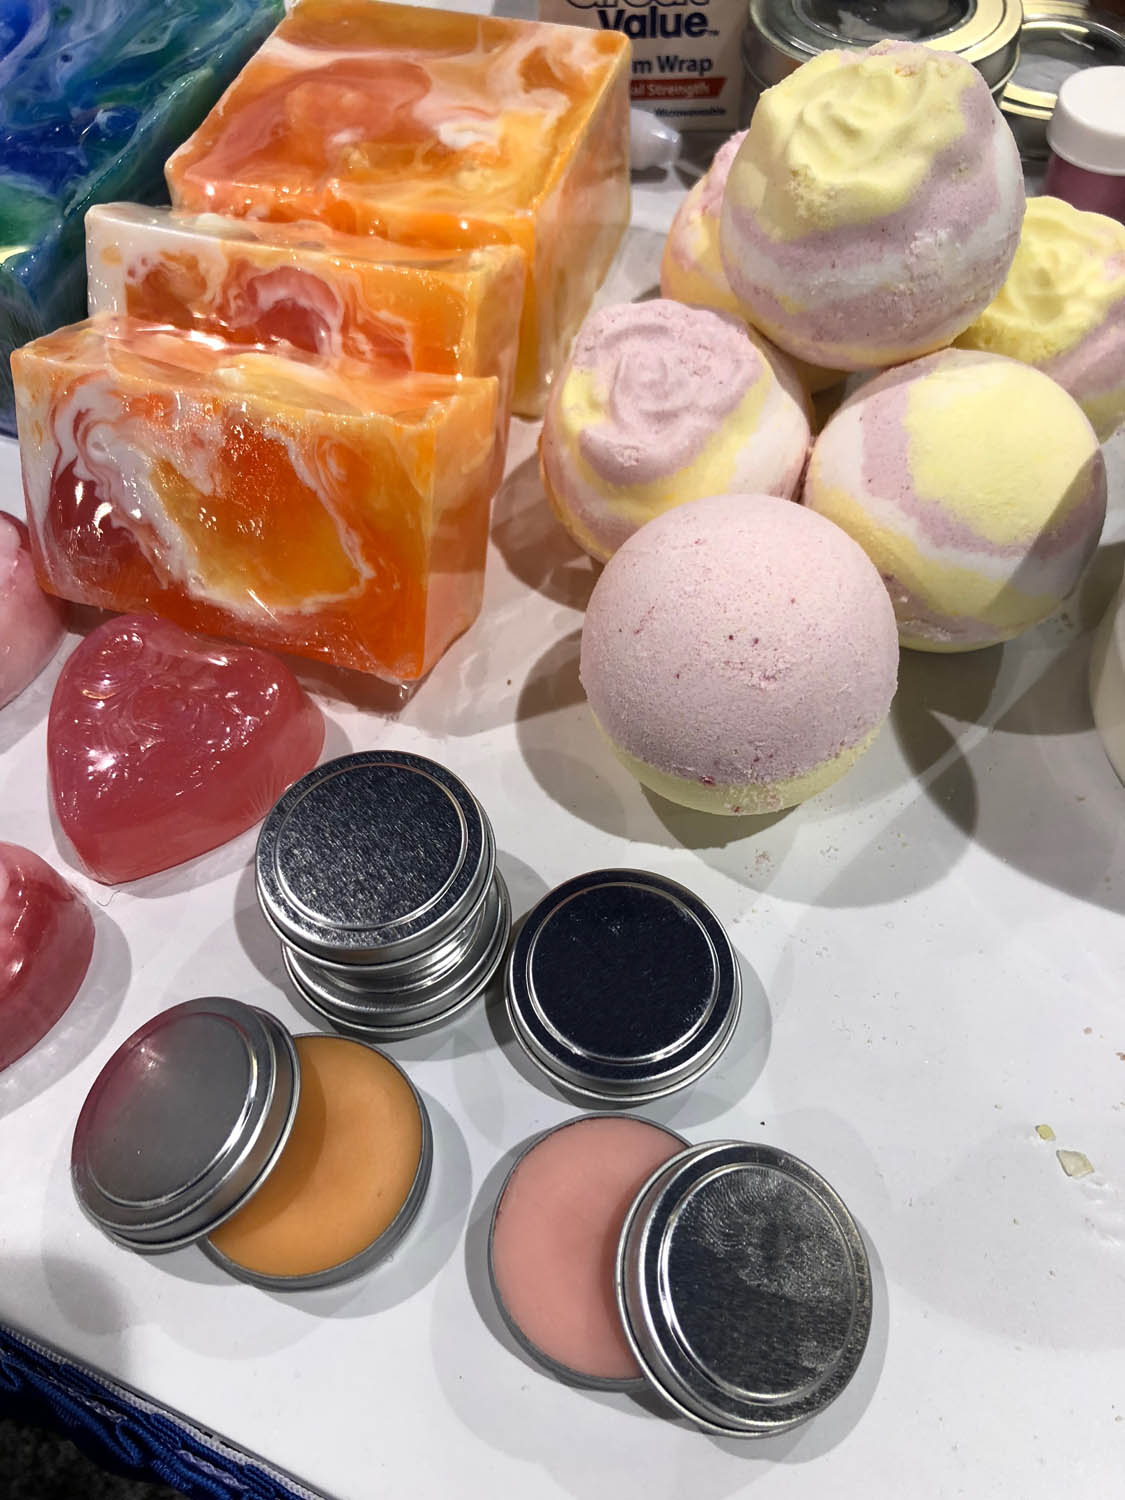 An assortment of homemade glycerin-based soaps, bath bombs, and lip balms made from Life of the Party products.